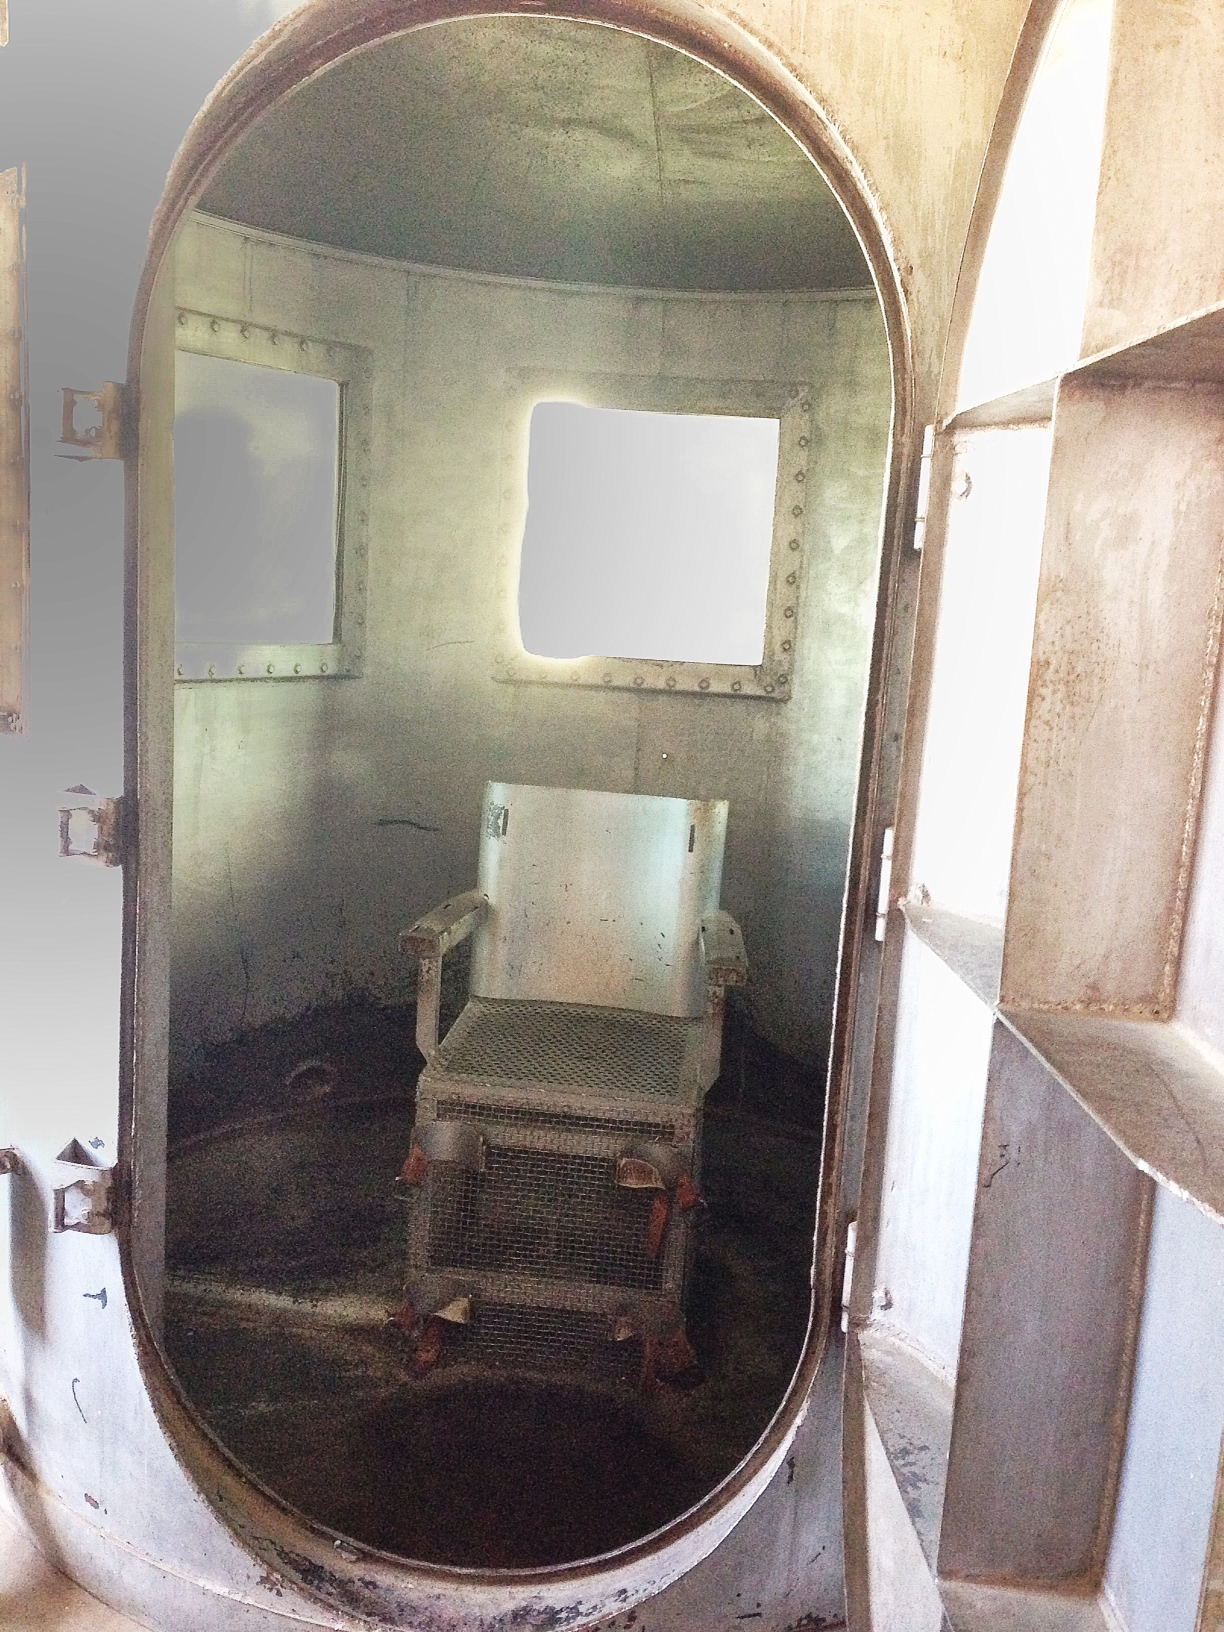 Inside the gas chamber